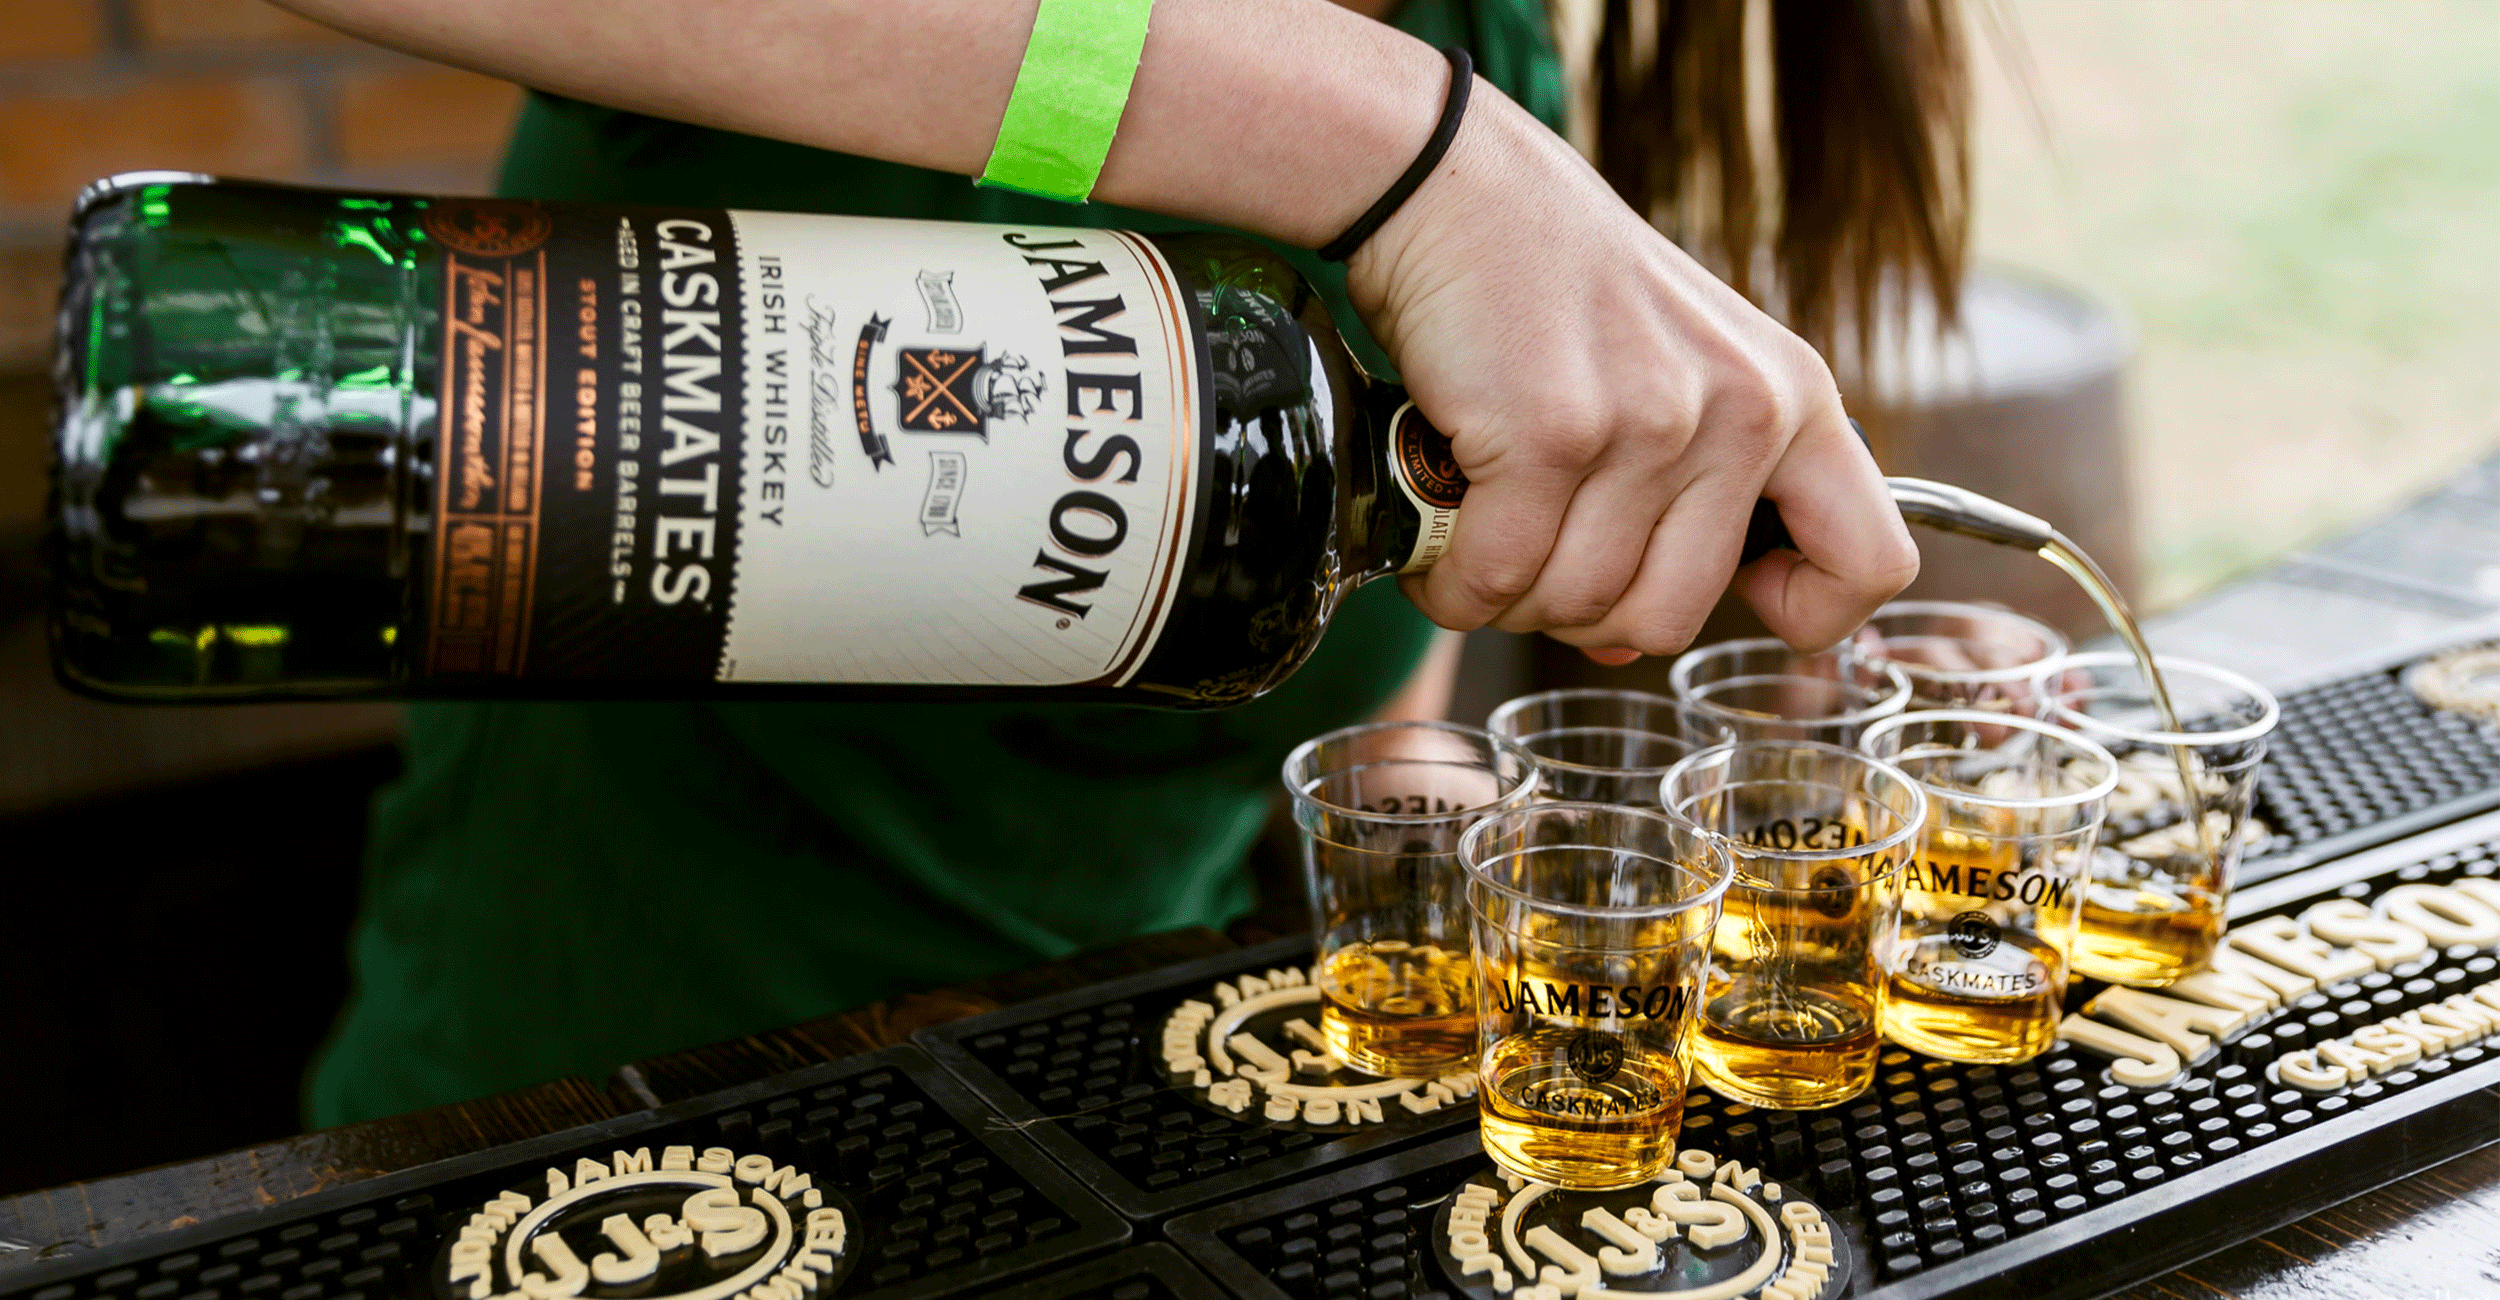 Jameson-Pouring.png